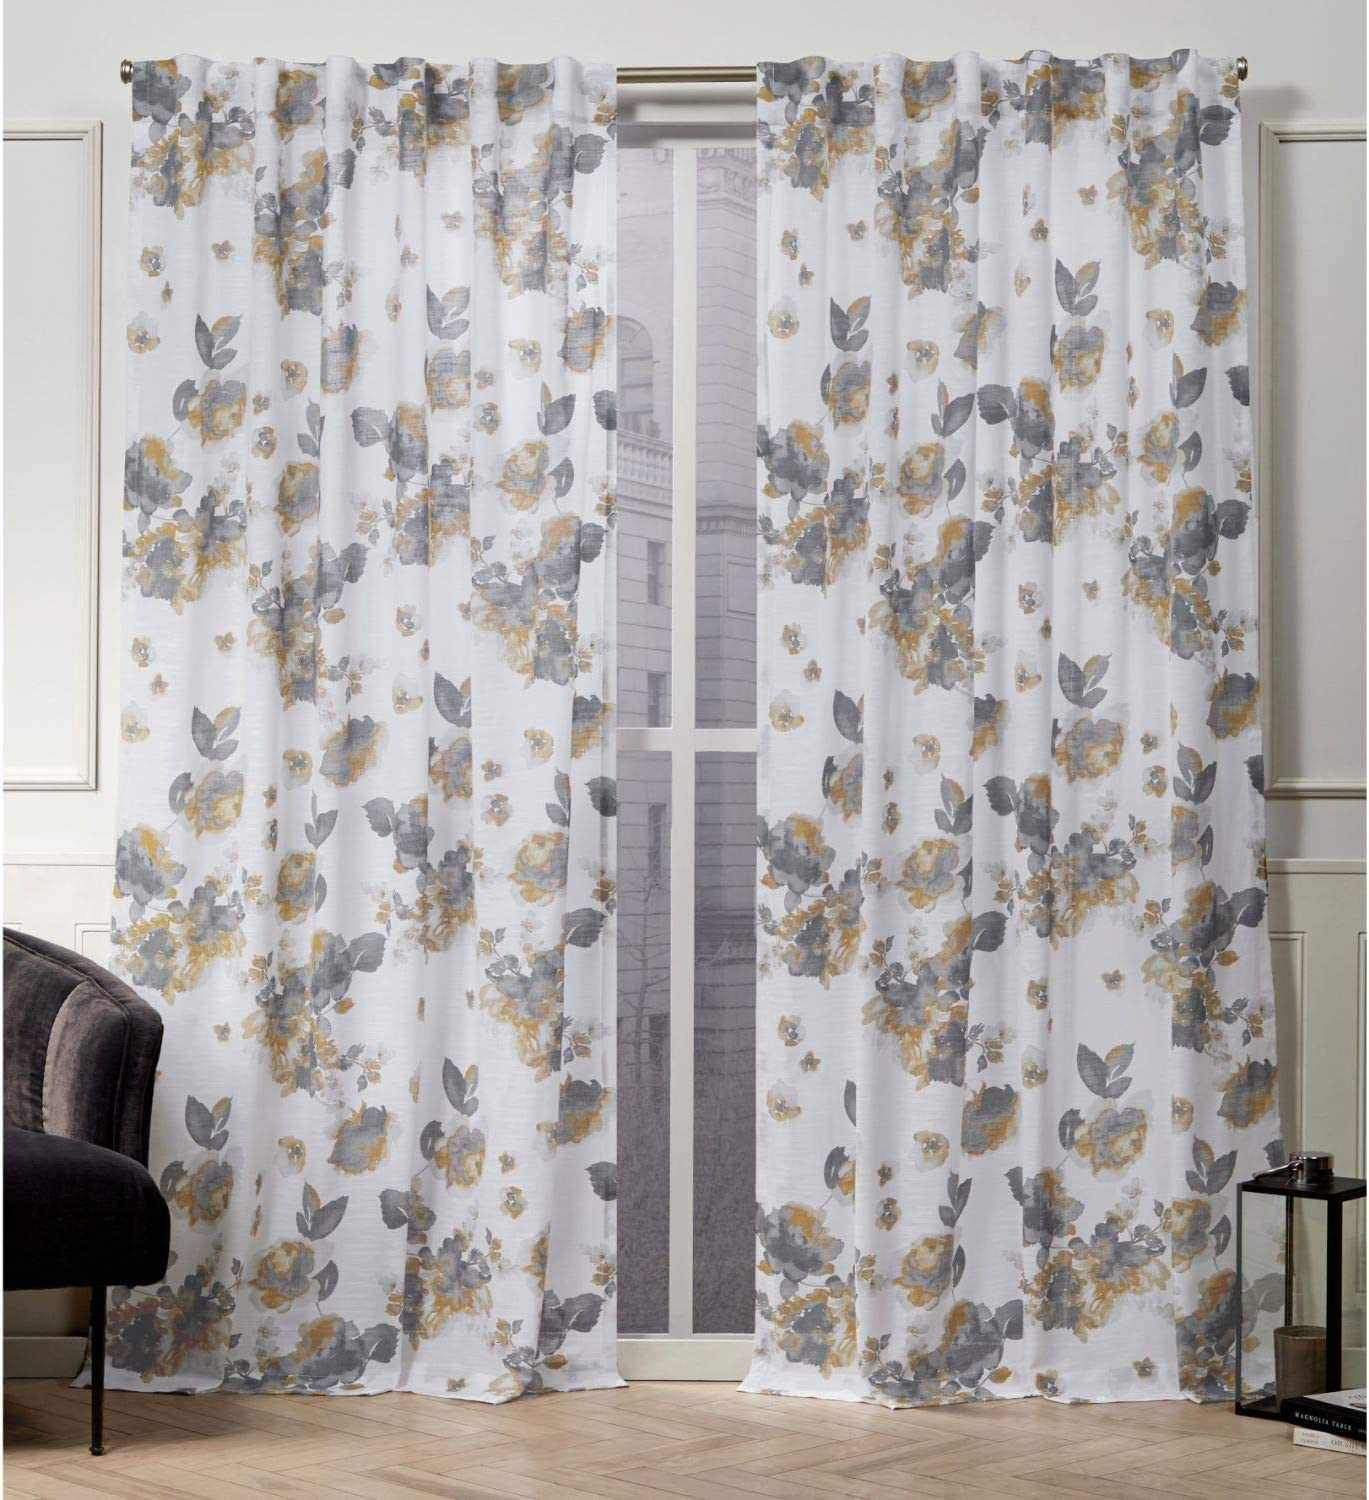 Nicole Miller Kristy Hidden Tab Top Curtain Panel, Honey Gold, 50x96, 2 Piece